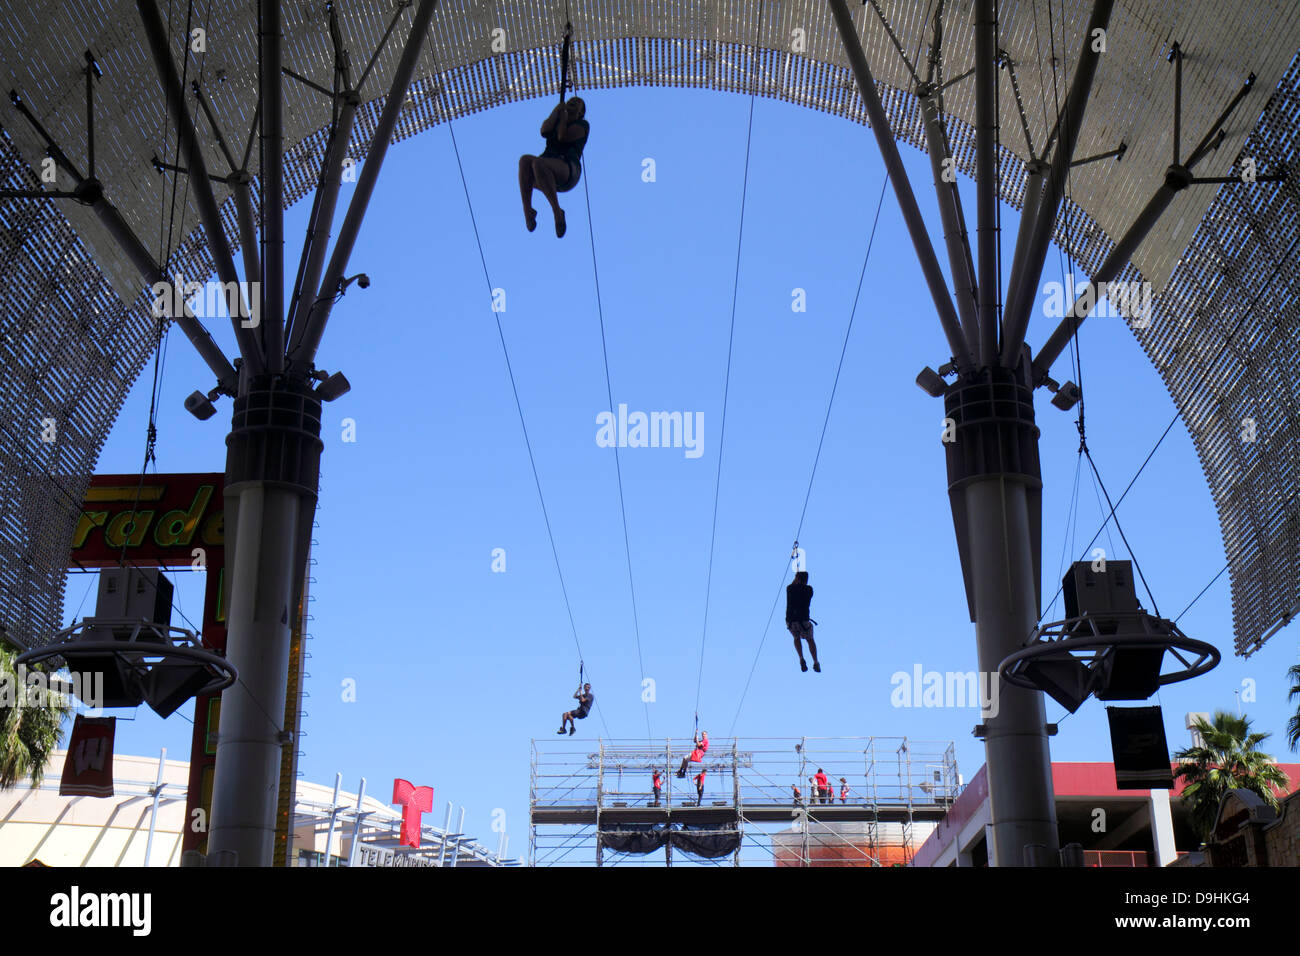 Nevada Las Vegas Downtown Fremont Street Experience FlightLinez zip line ride thrill - Stock Image